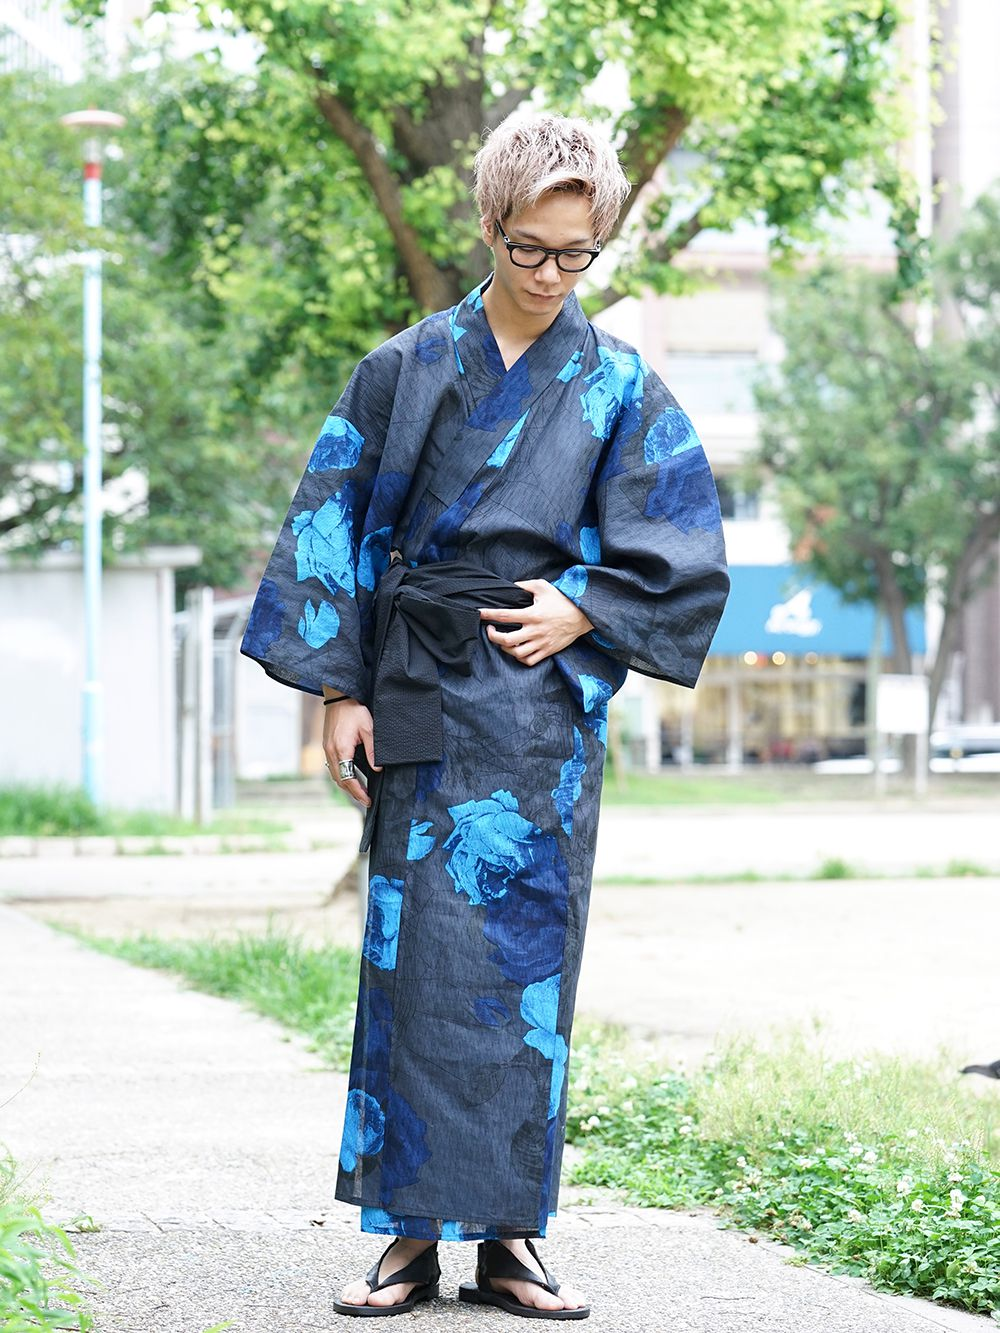 DIET BUTCHER SLIM SKIN 【YUKATA】 - 1-001